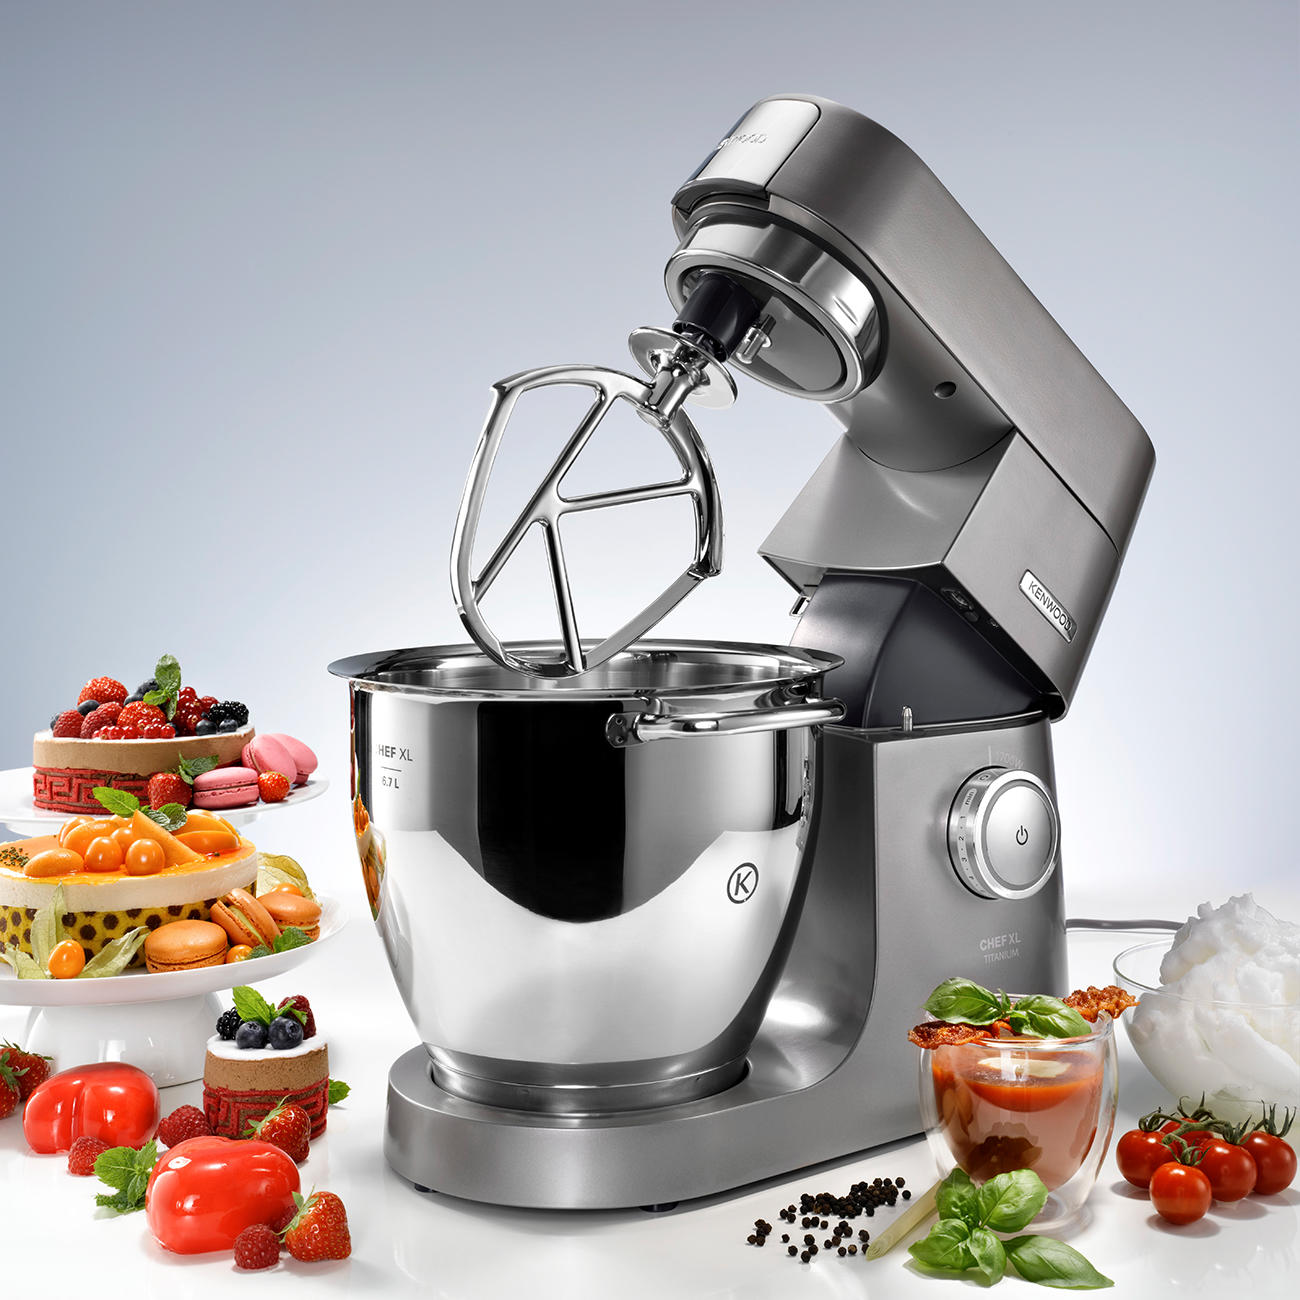 Robot m nager chef xl titanium kenwood pas cher pro idee for Appareil menager cuisine